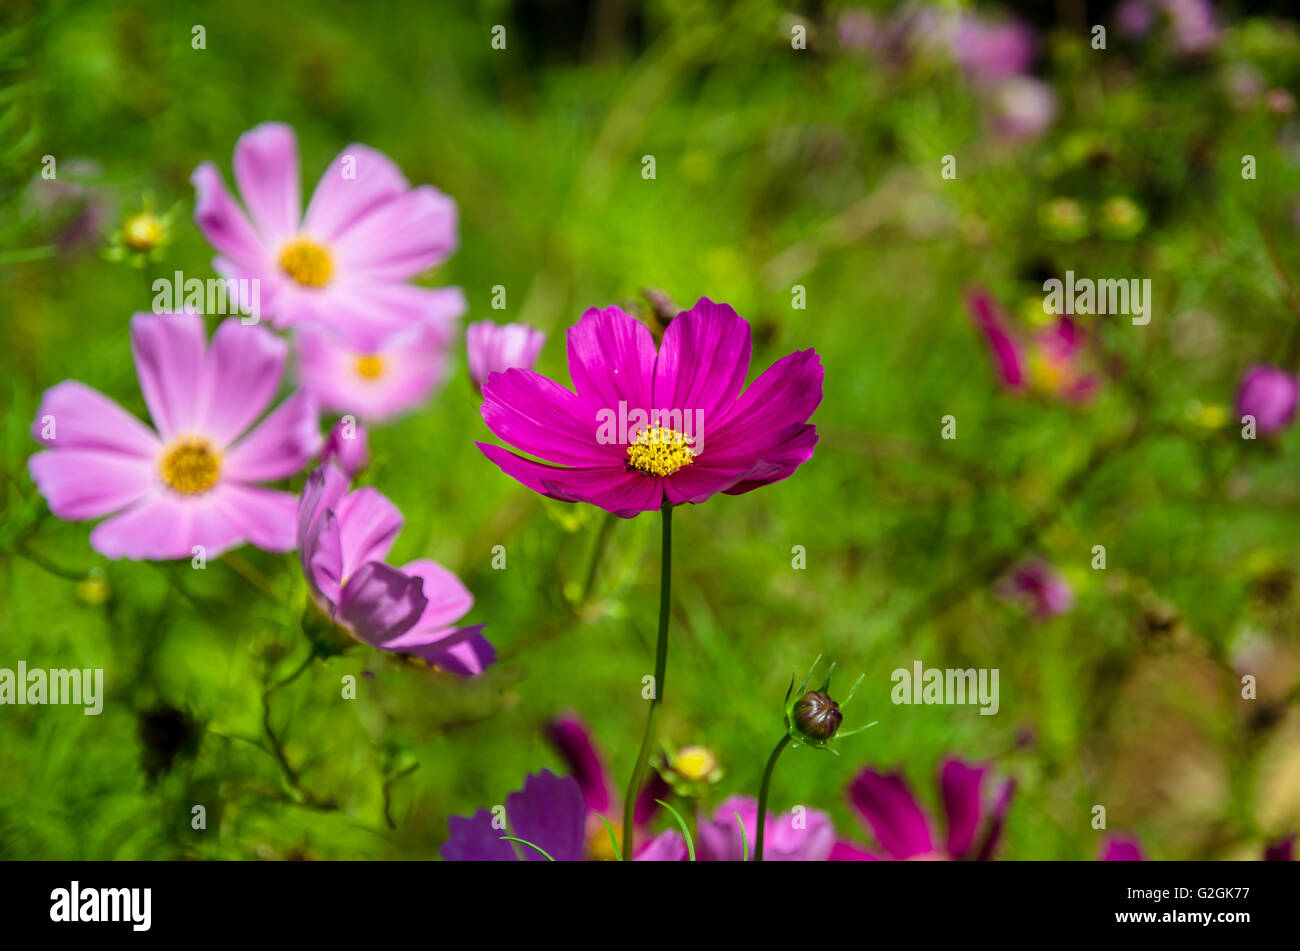 Pink cosmos flower and green leaves stock photo 104857851 alamy pink cosmos flower and green leaves mightylinksfo